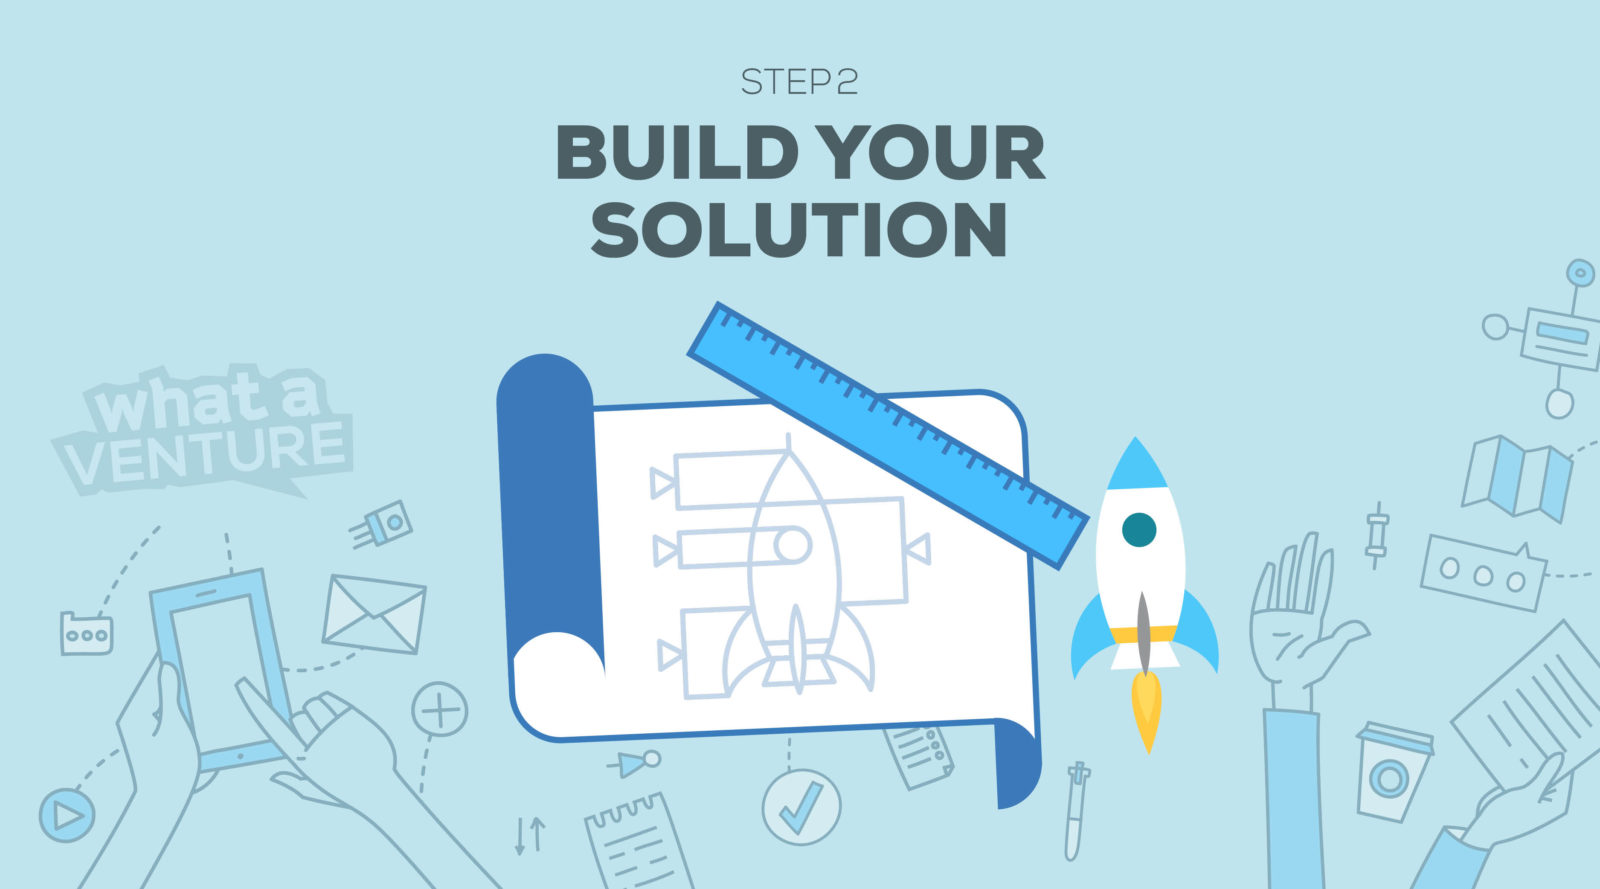 Step 2 Build your Solution